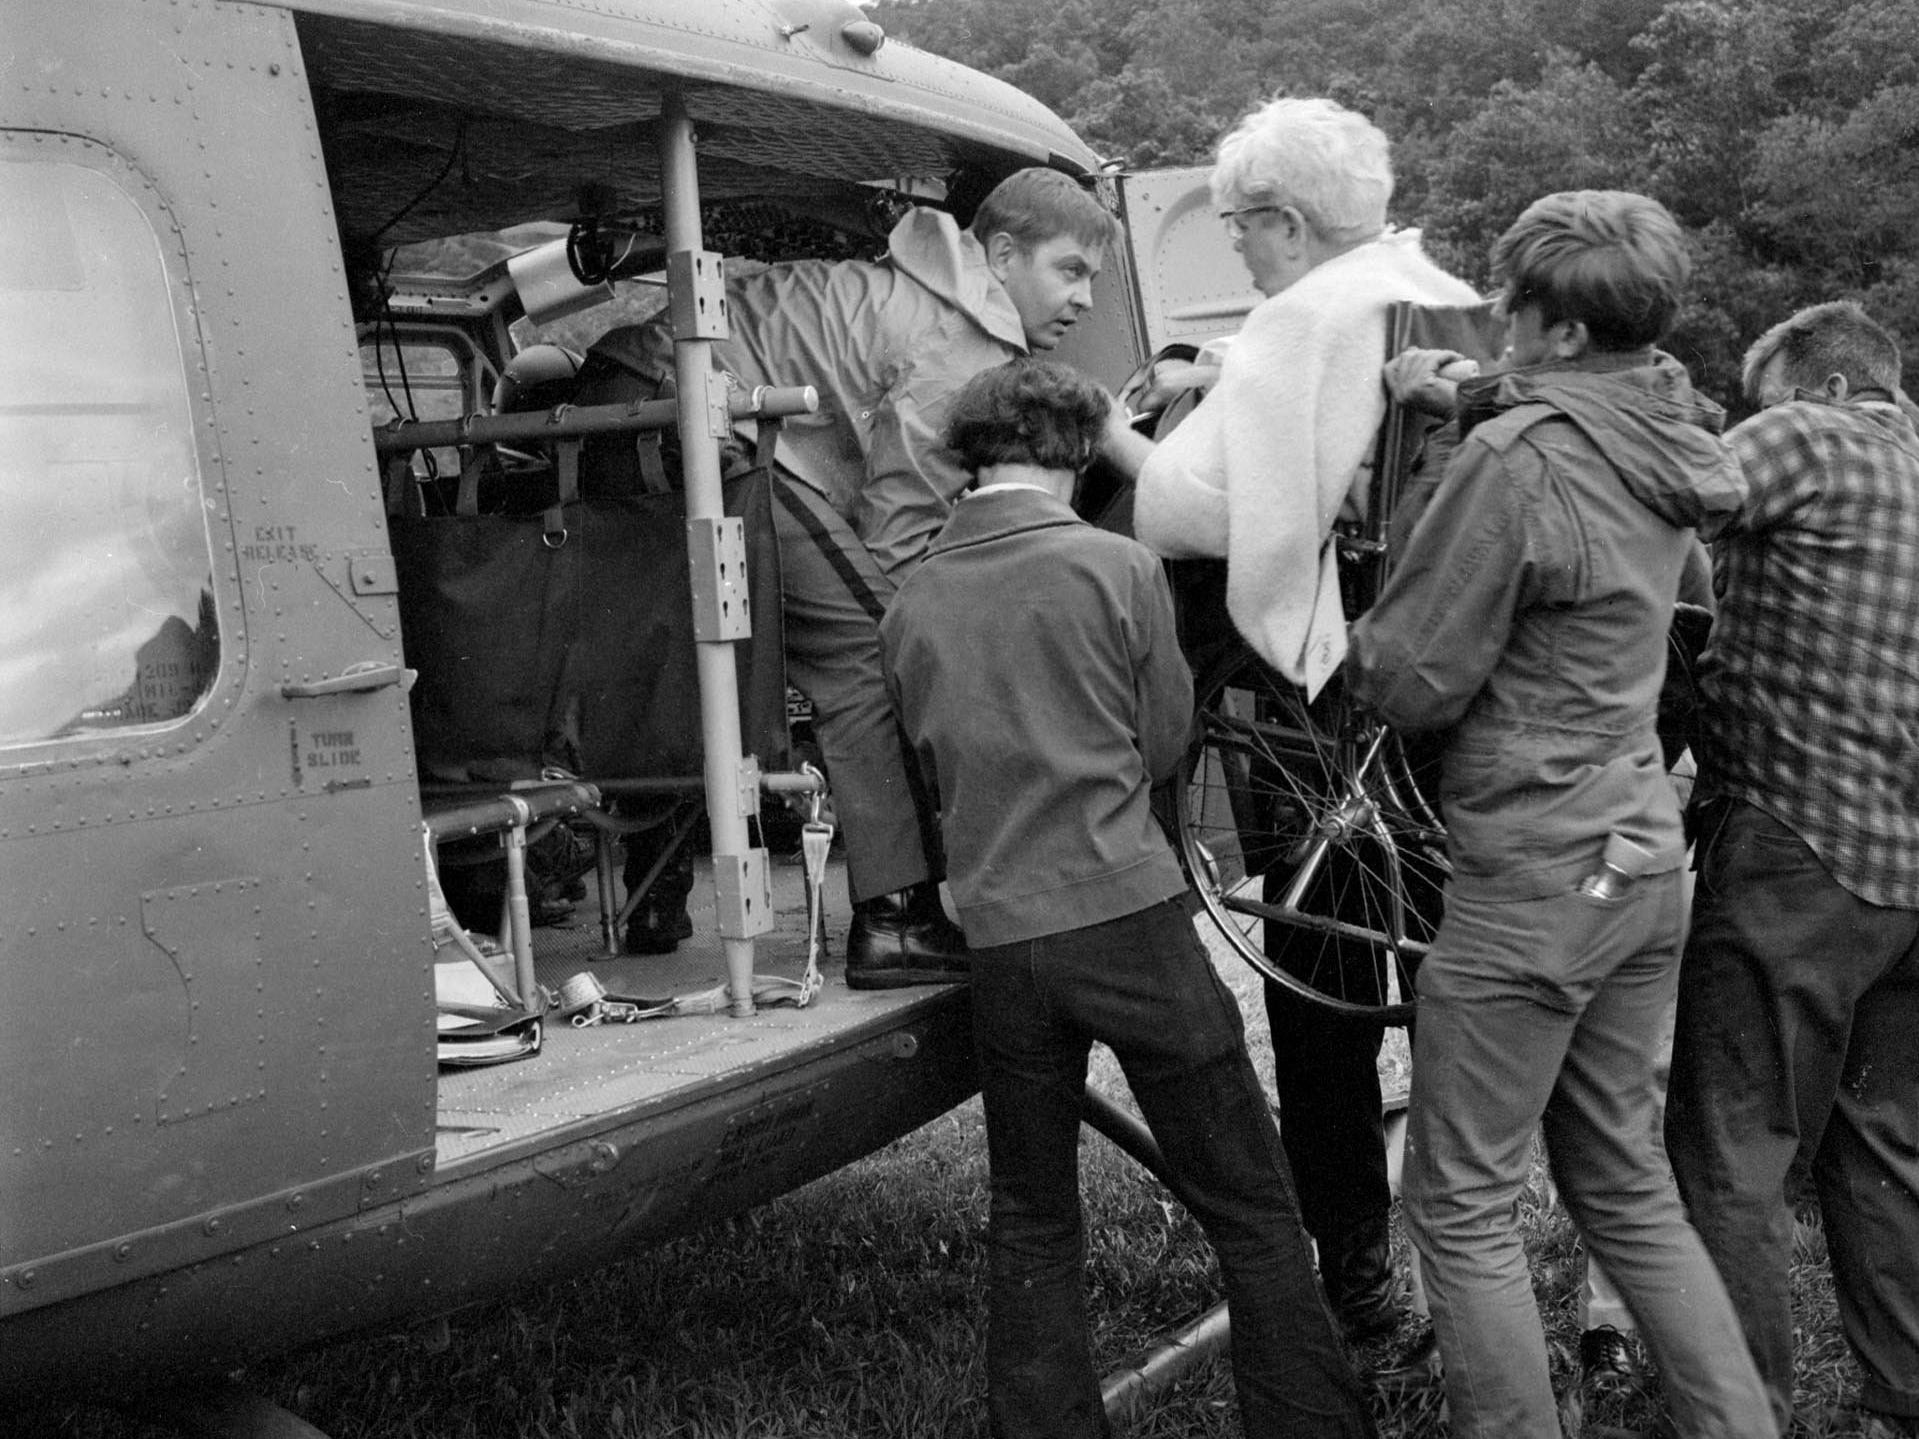 St. Joseph's Hospital in Elmira and other health care facilities in the path of Agnes were forced to evacuate patients by helicopter in some cases.